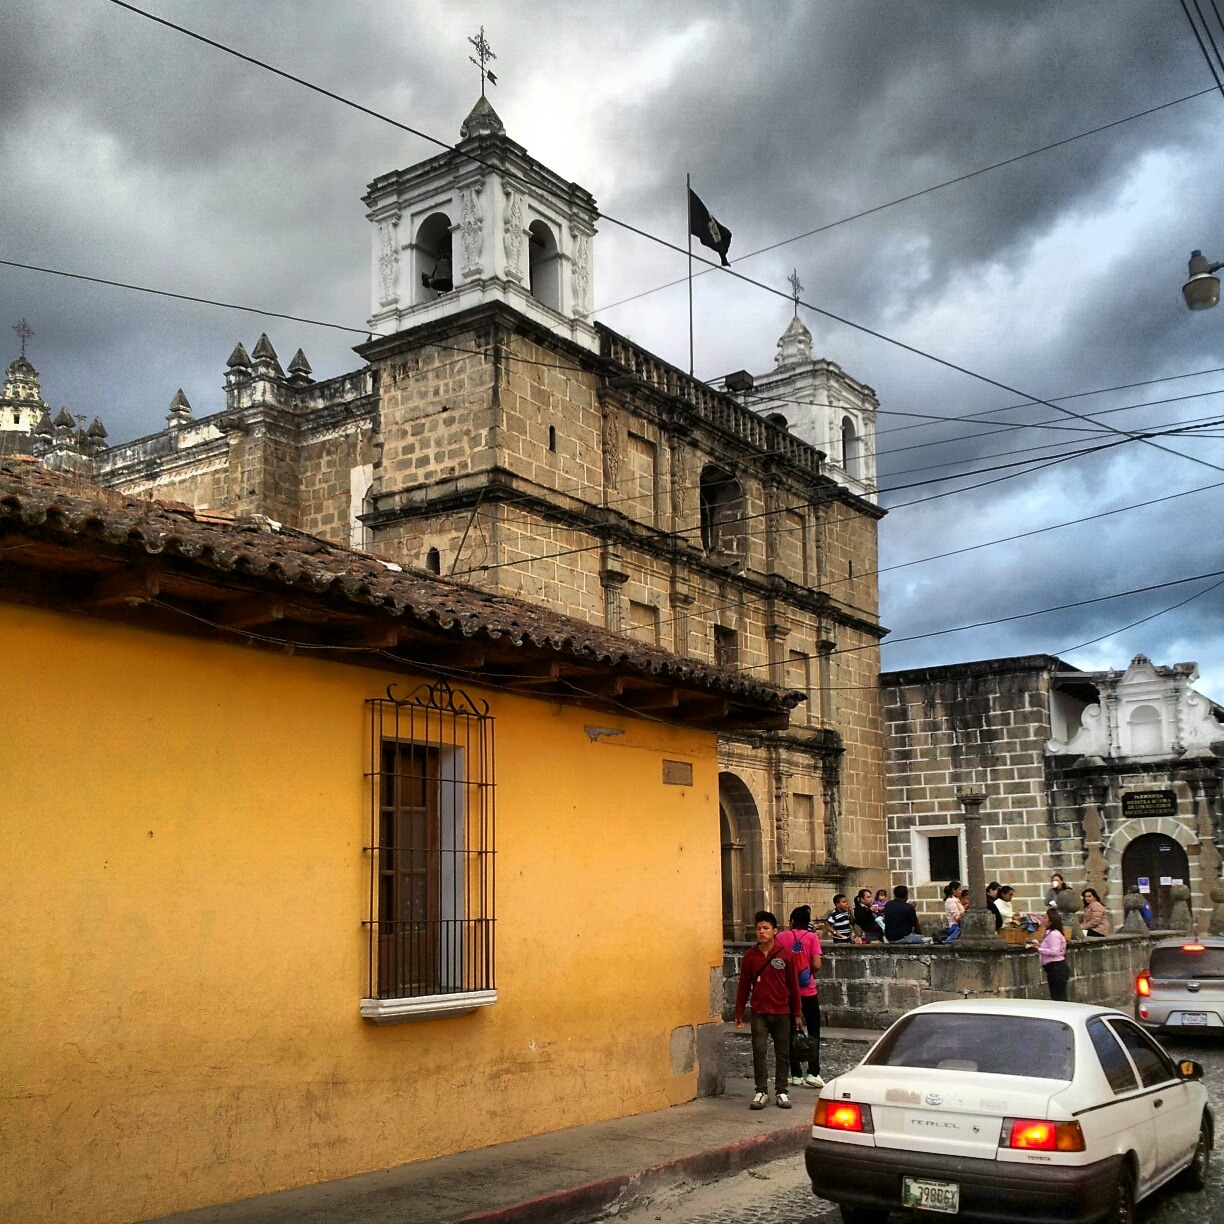 A picture of an old church in Antigua, Guatemala I took